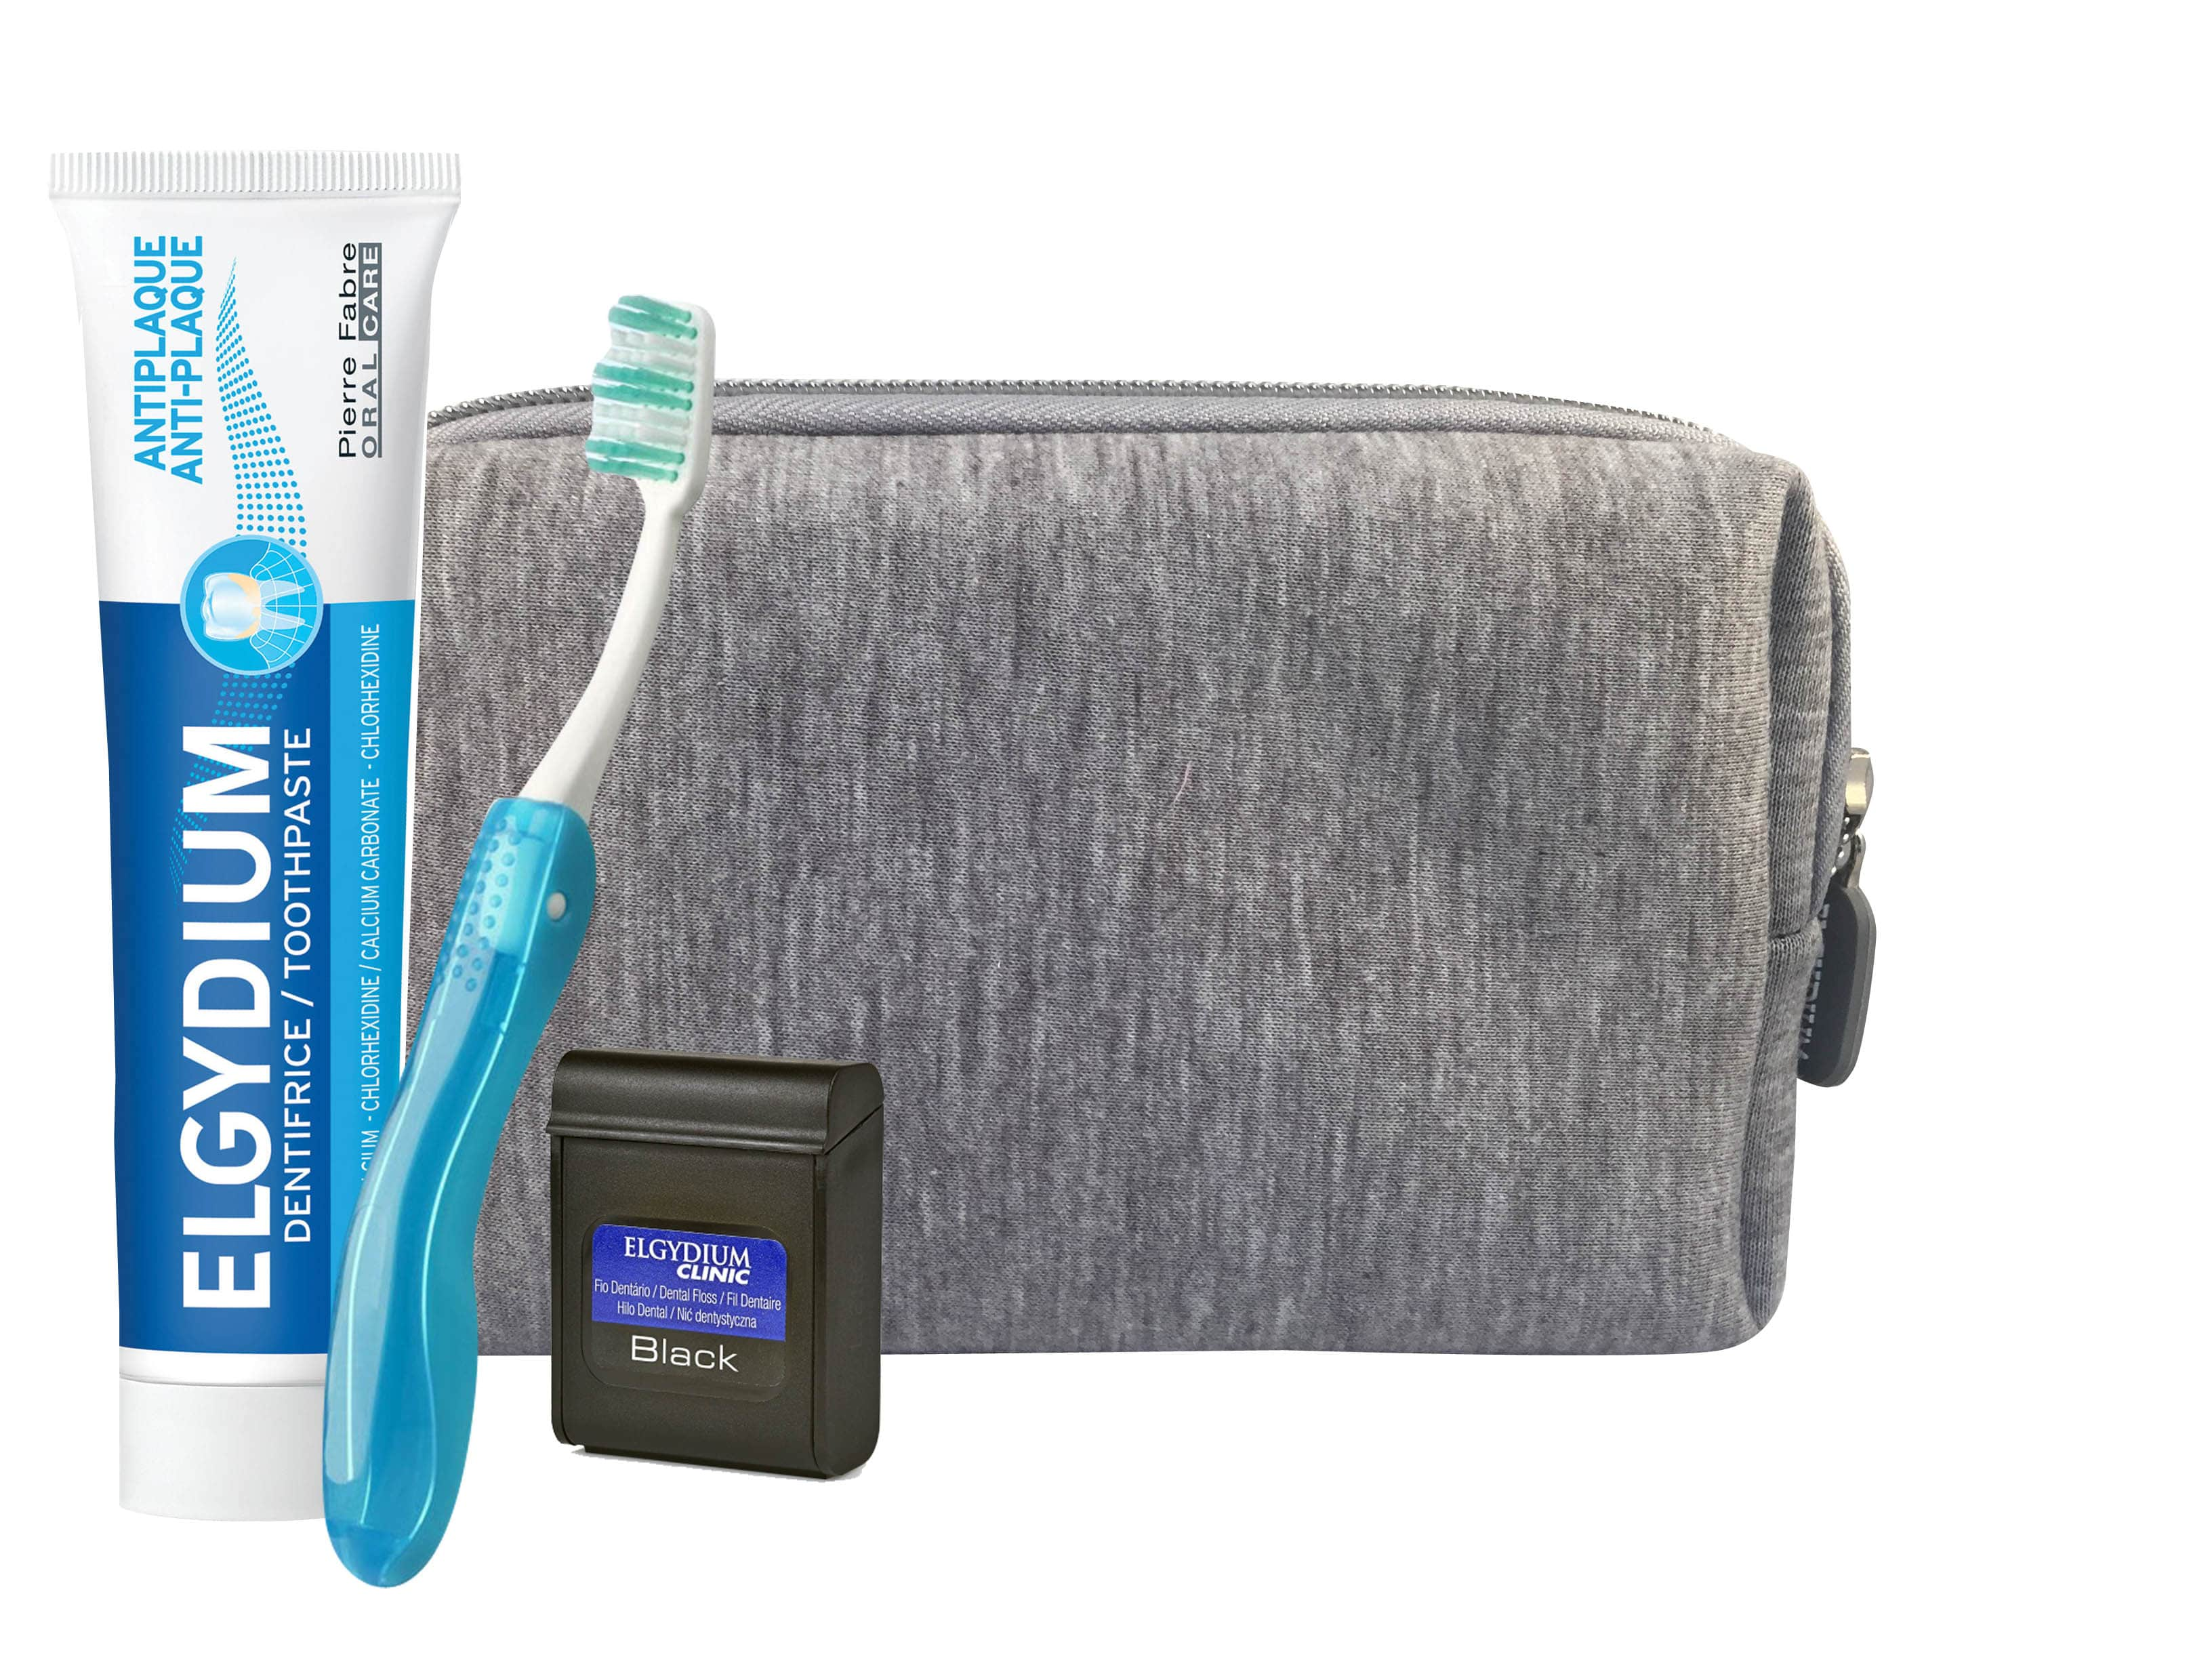 Elgydium Dental Grey Travel Kit with Elgydium Pocket Toothbrush,1 pc, Antiplaque Toothpaste, 50ml & Dental Floss Black, 5m